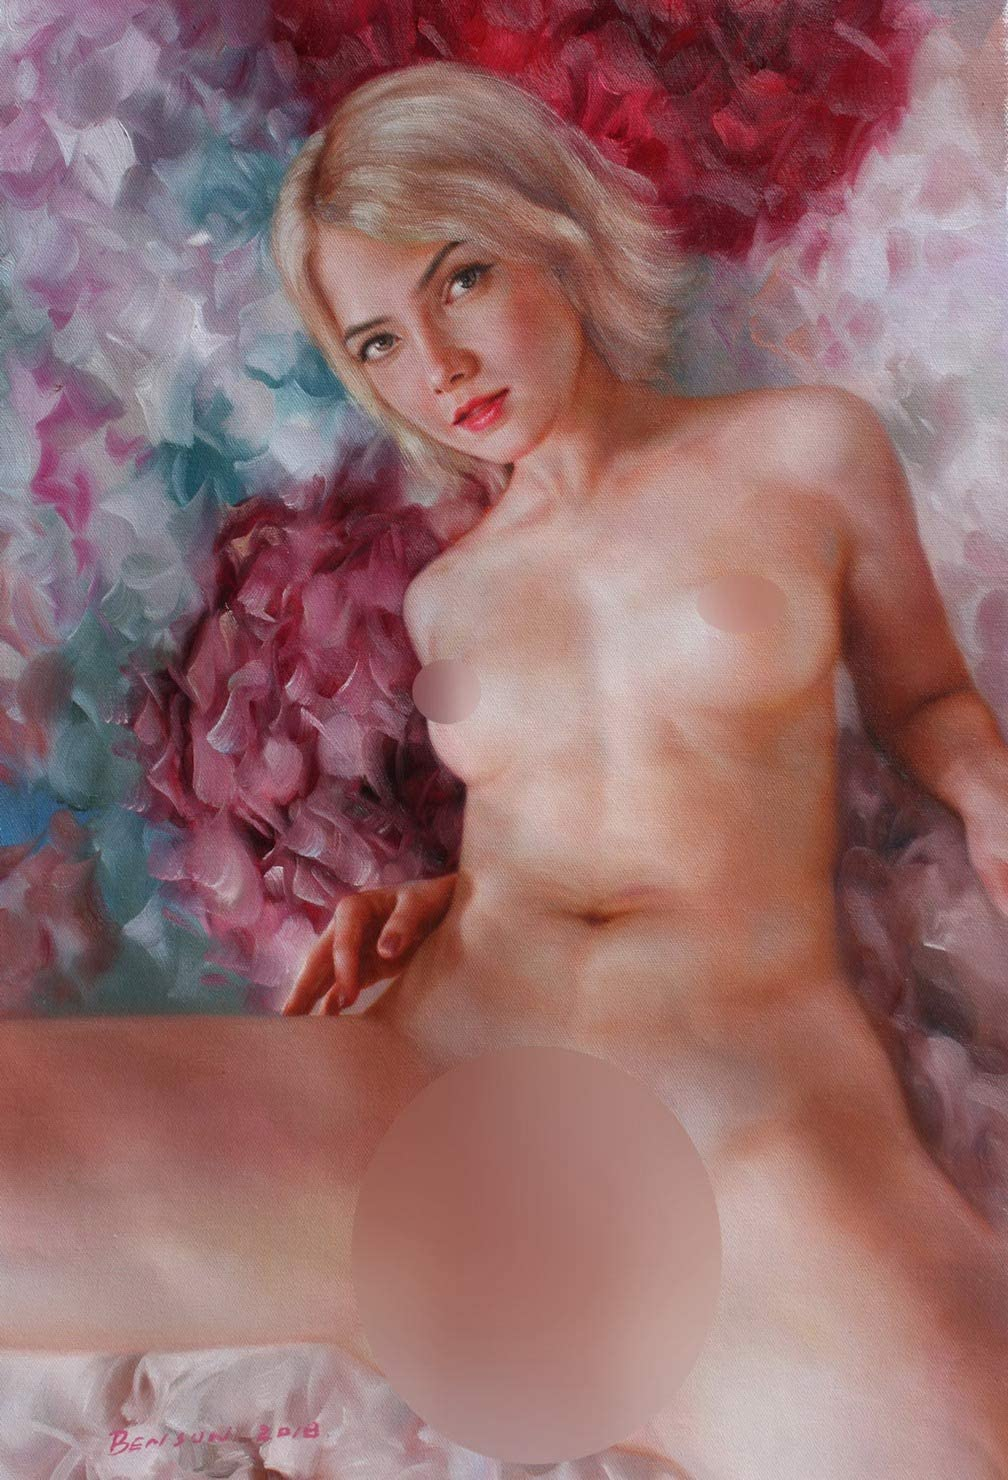 Nude Girl Art Prints Canvas Transfer from Original Oil Painting Charming Nude Girl Beauty Lady Female Nude for Home Wall Decor (16